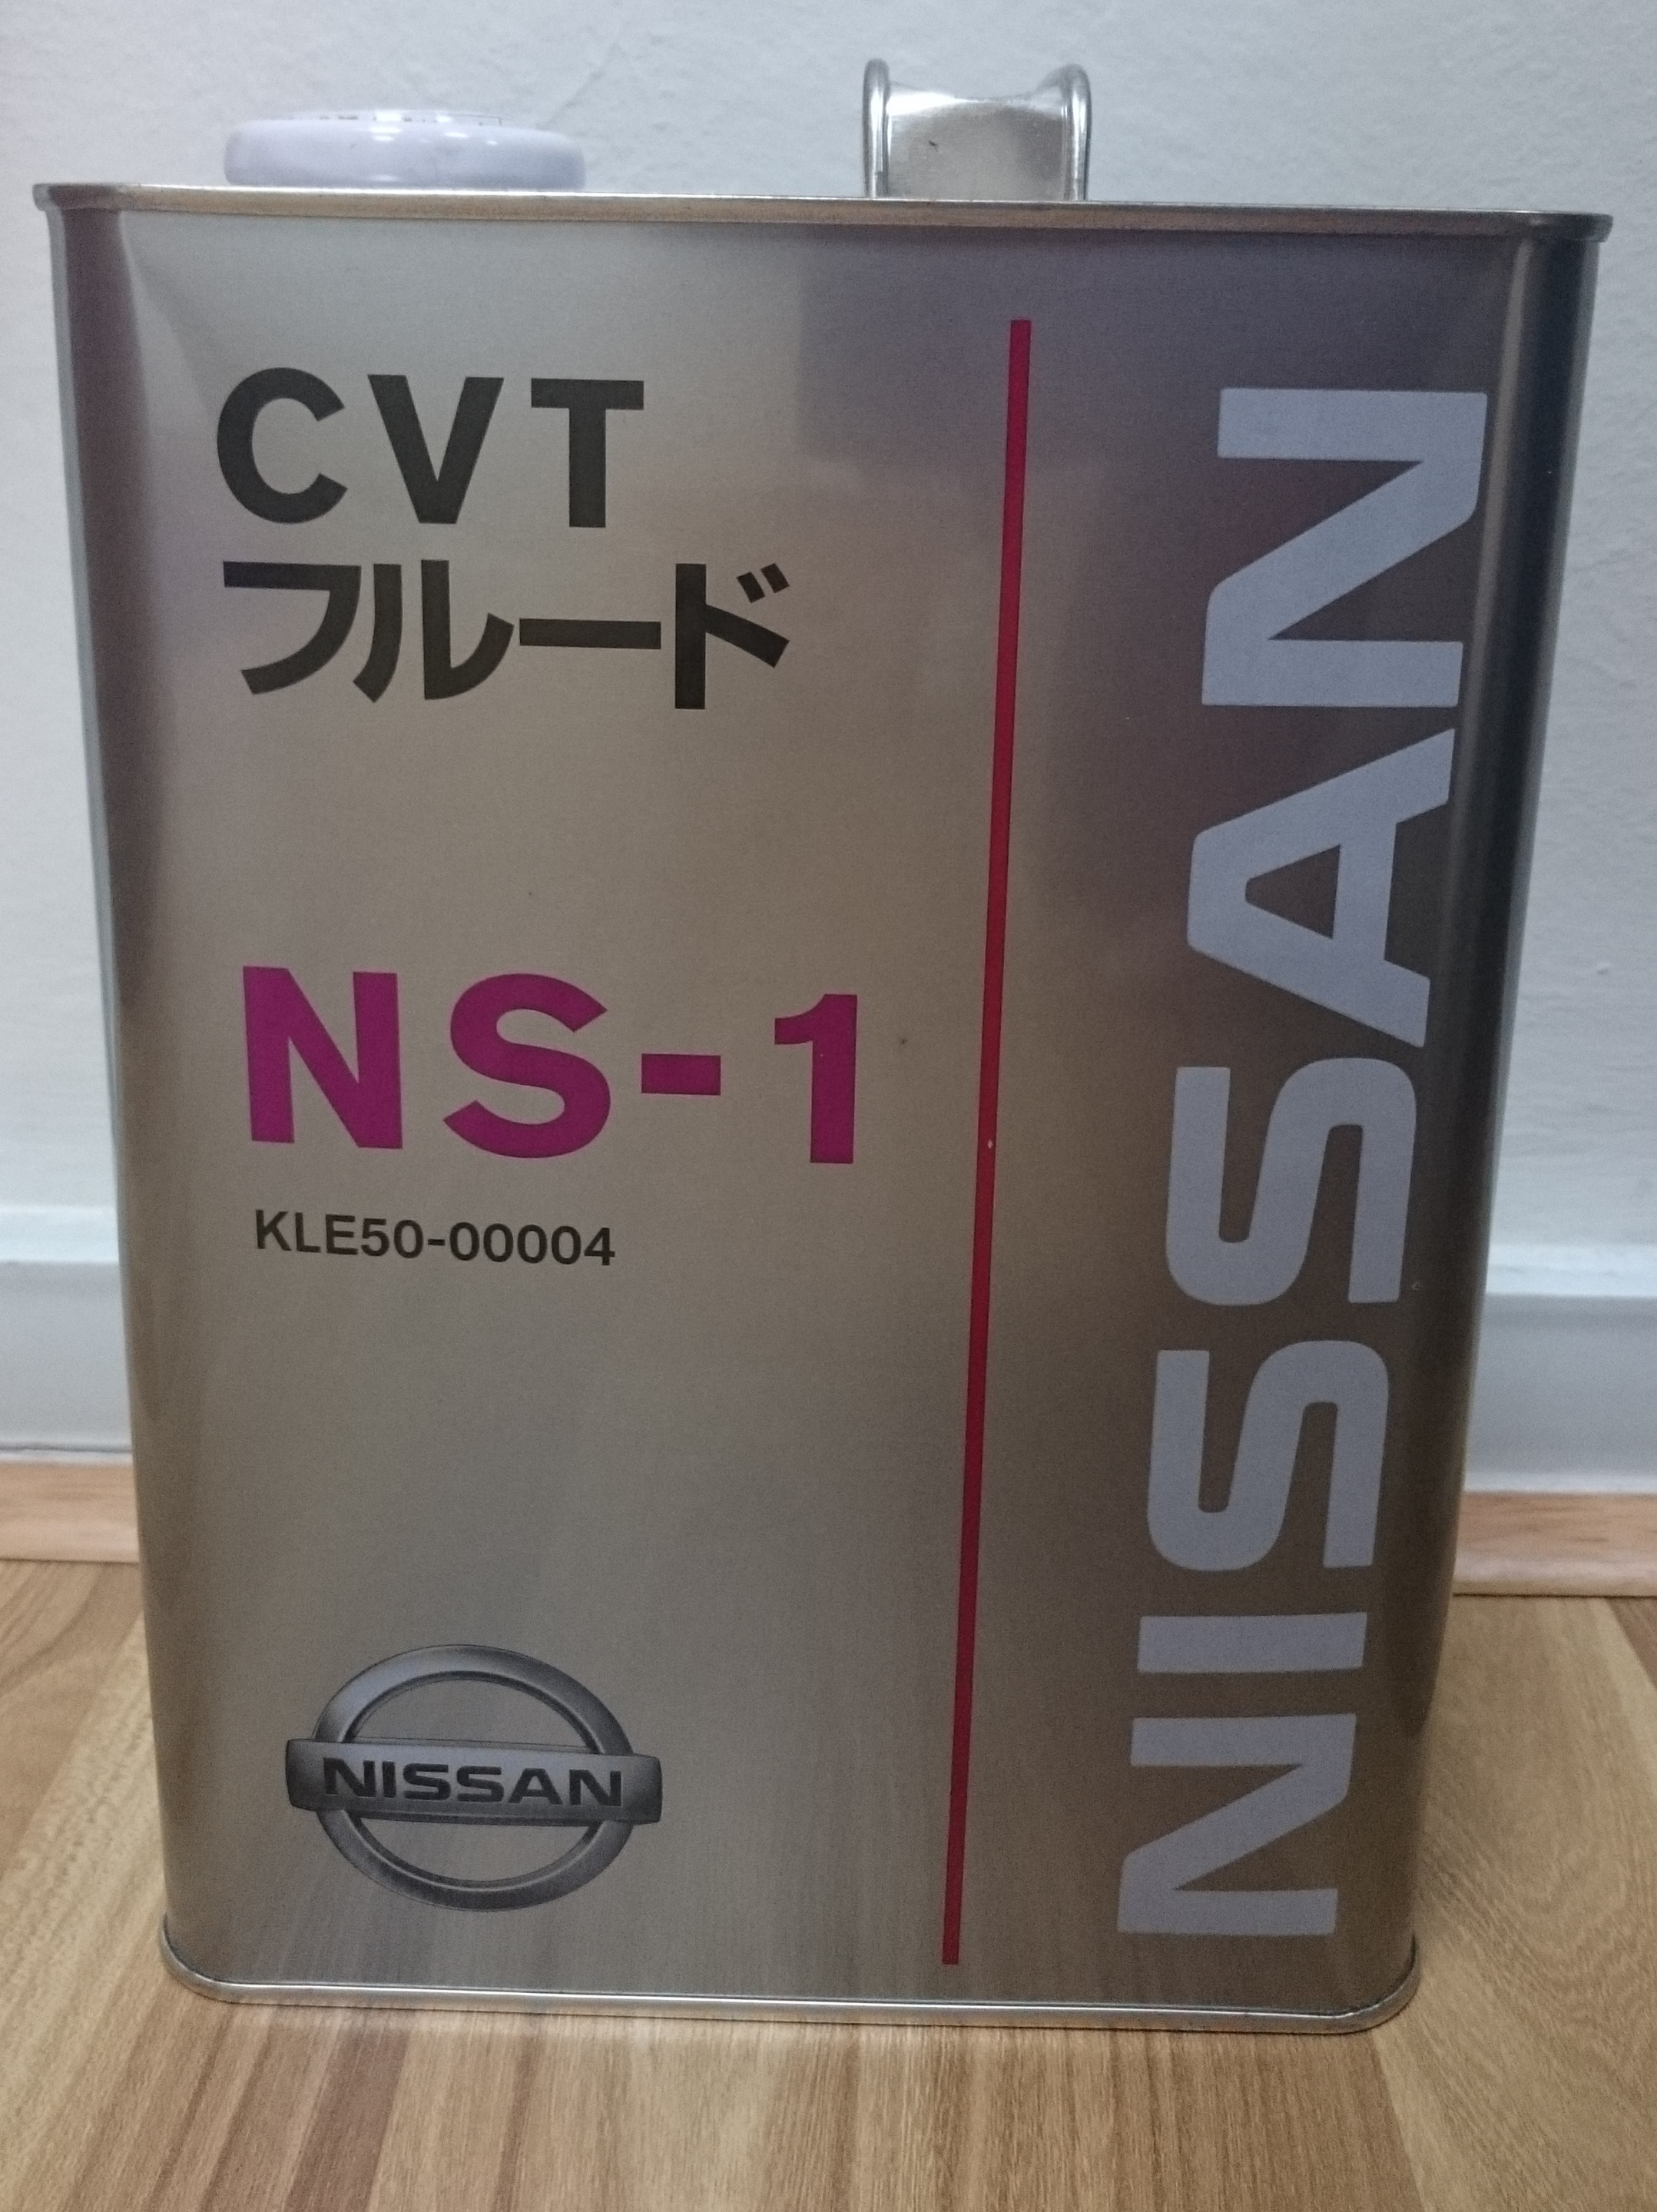 Nissan cvt fluid ns 1 continuous variable transmission fluid 4l pack kle50 00004